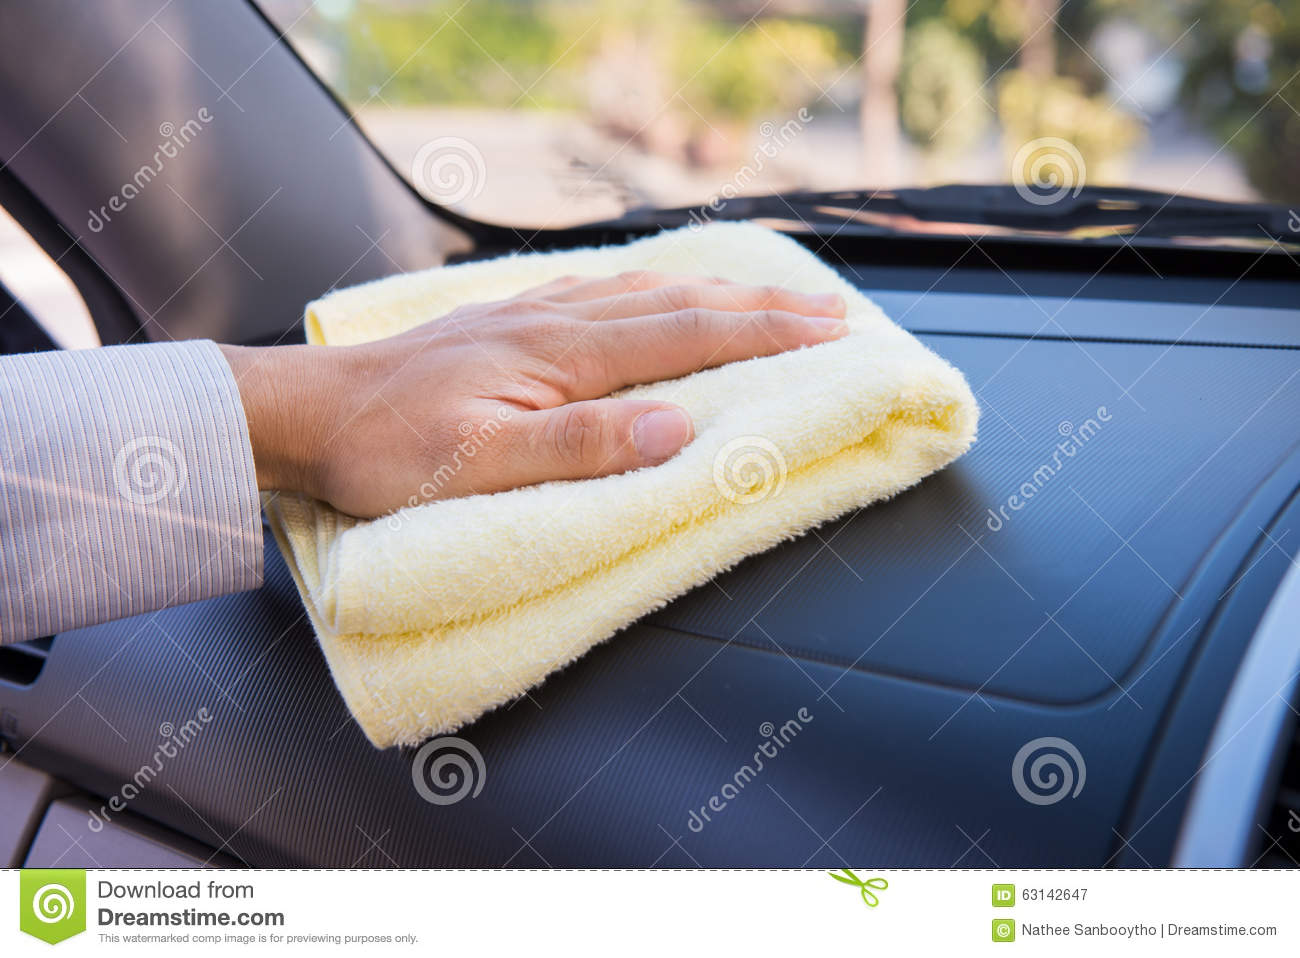 hand cleaning car with microfiber cloth stock photo image 63142647. Black Bedroom Furniture Sets. Home Design Ideas